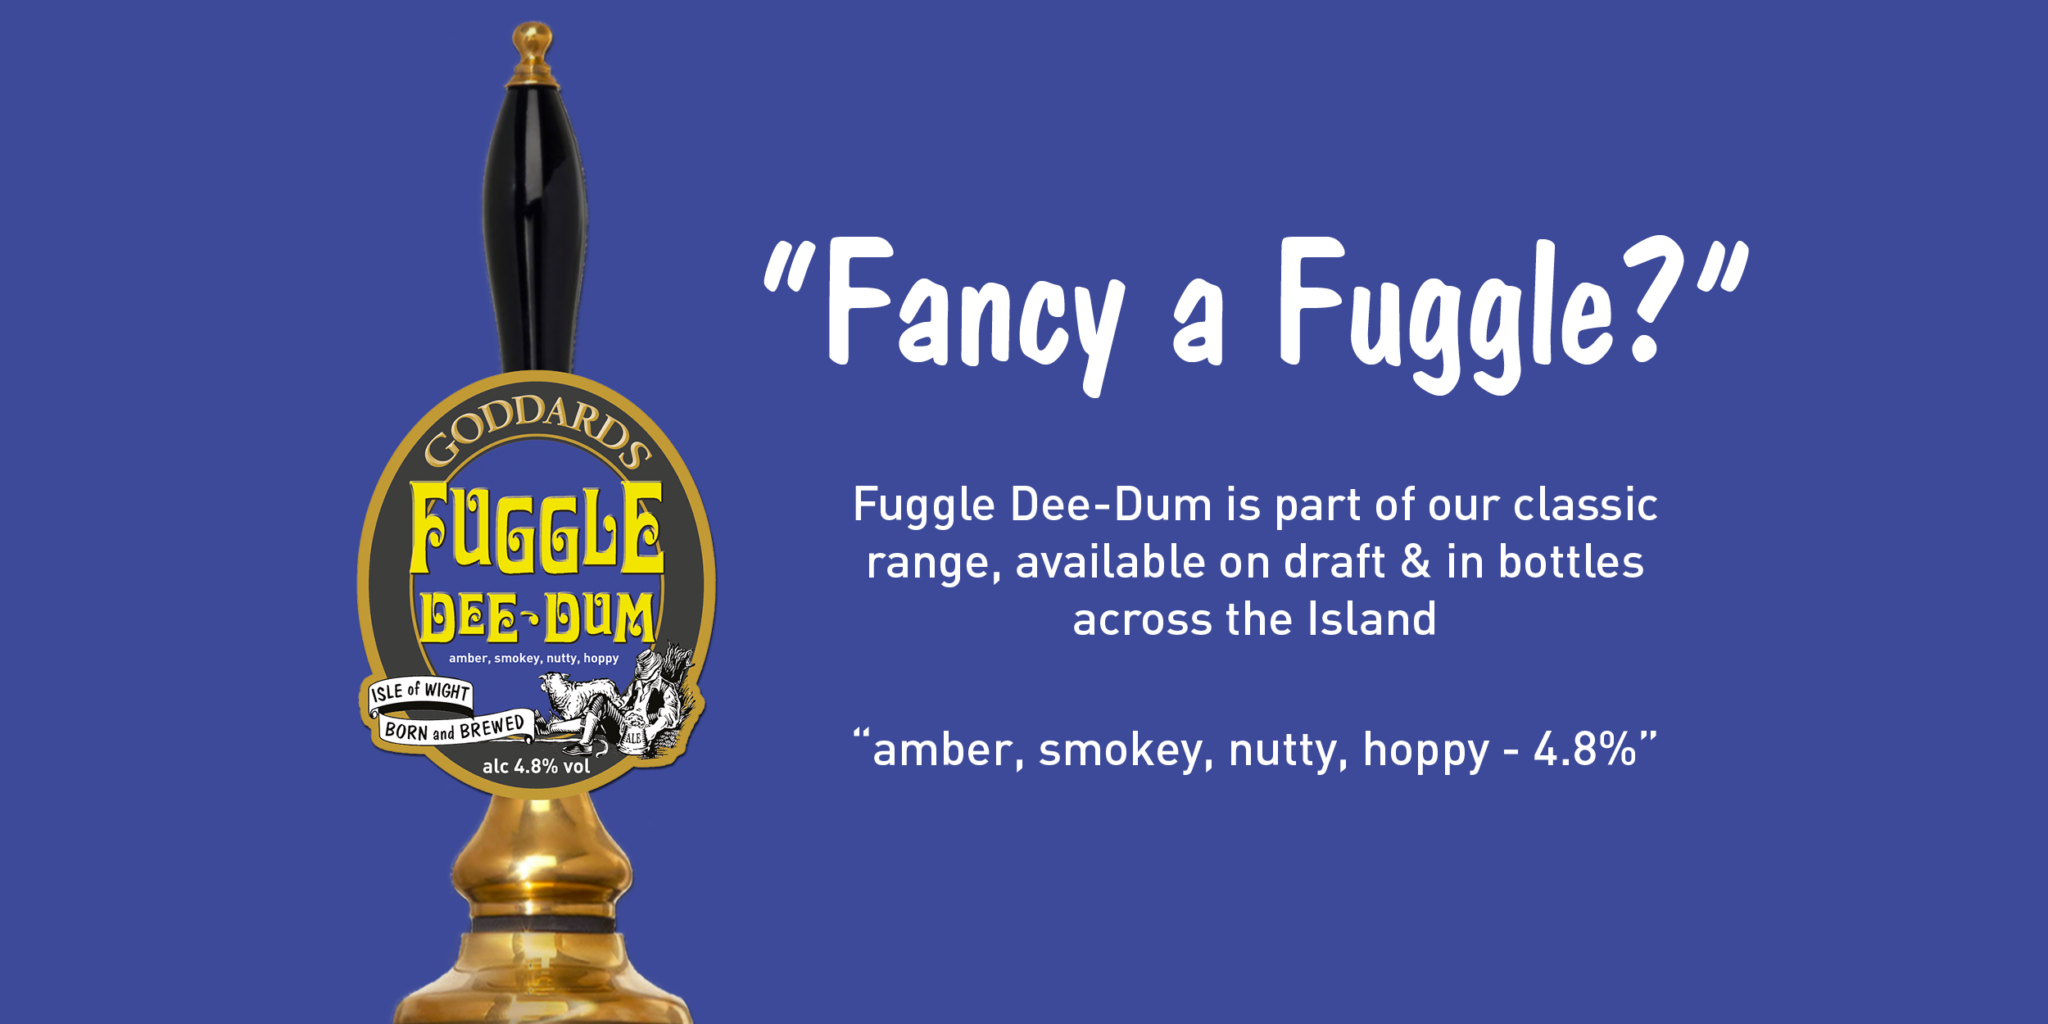 Fancy and Fuggle-dee-dum beer Goddards Isle of Wight